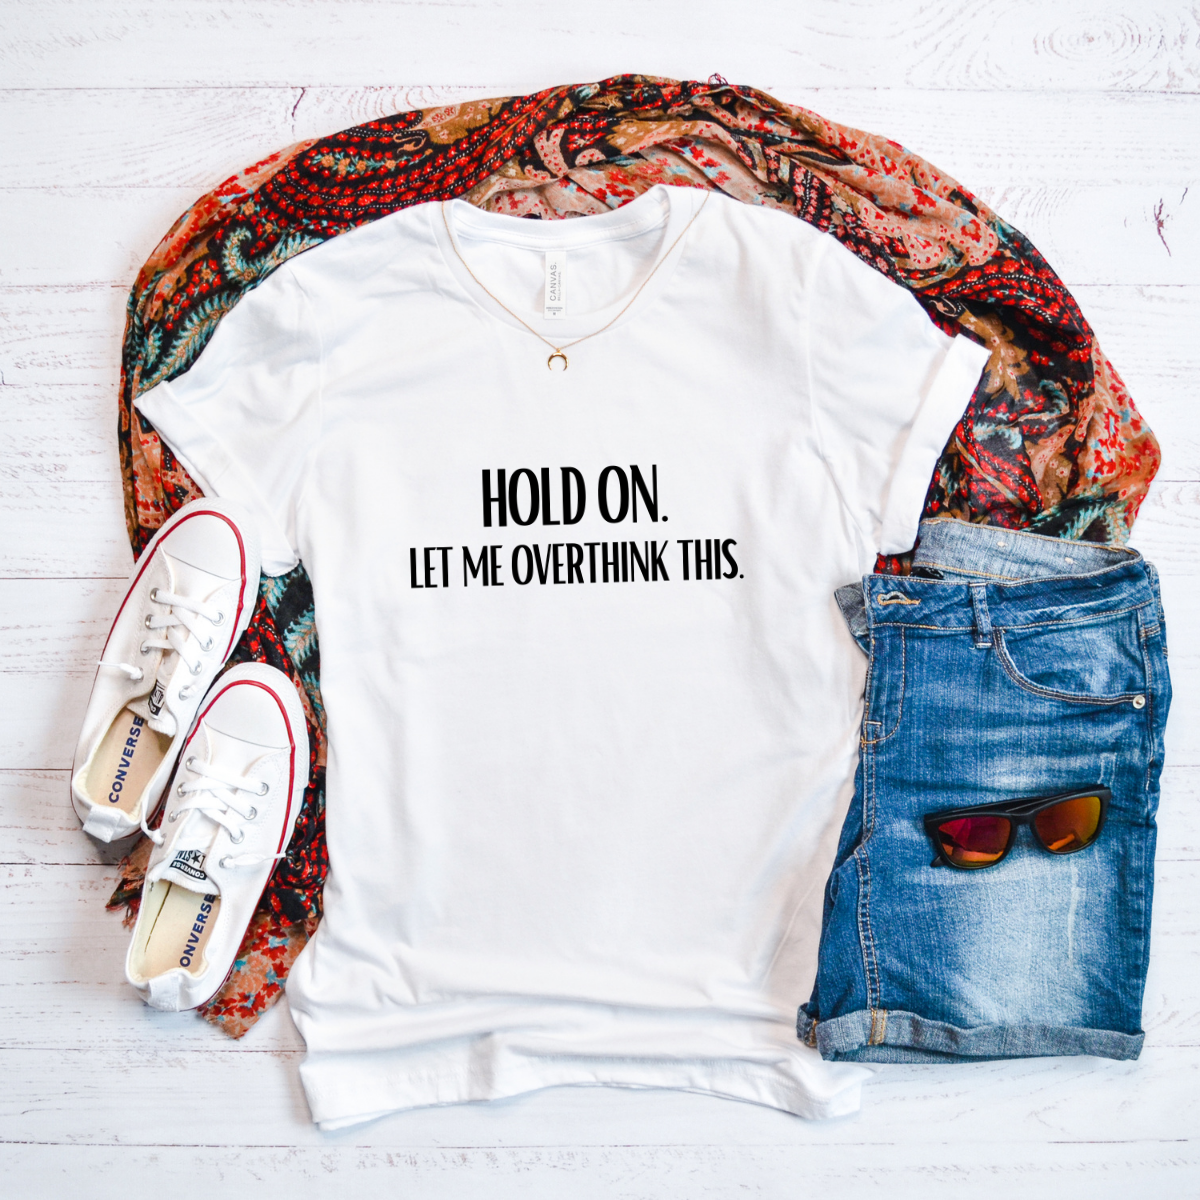 unisex-t-shirt-white-hold-on-let-me-overthink-this